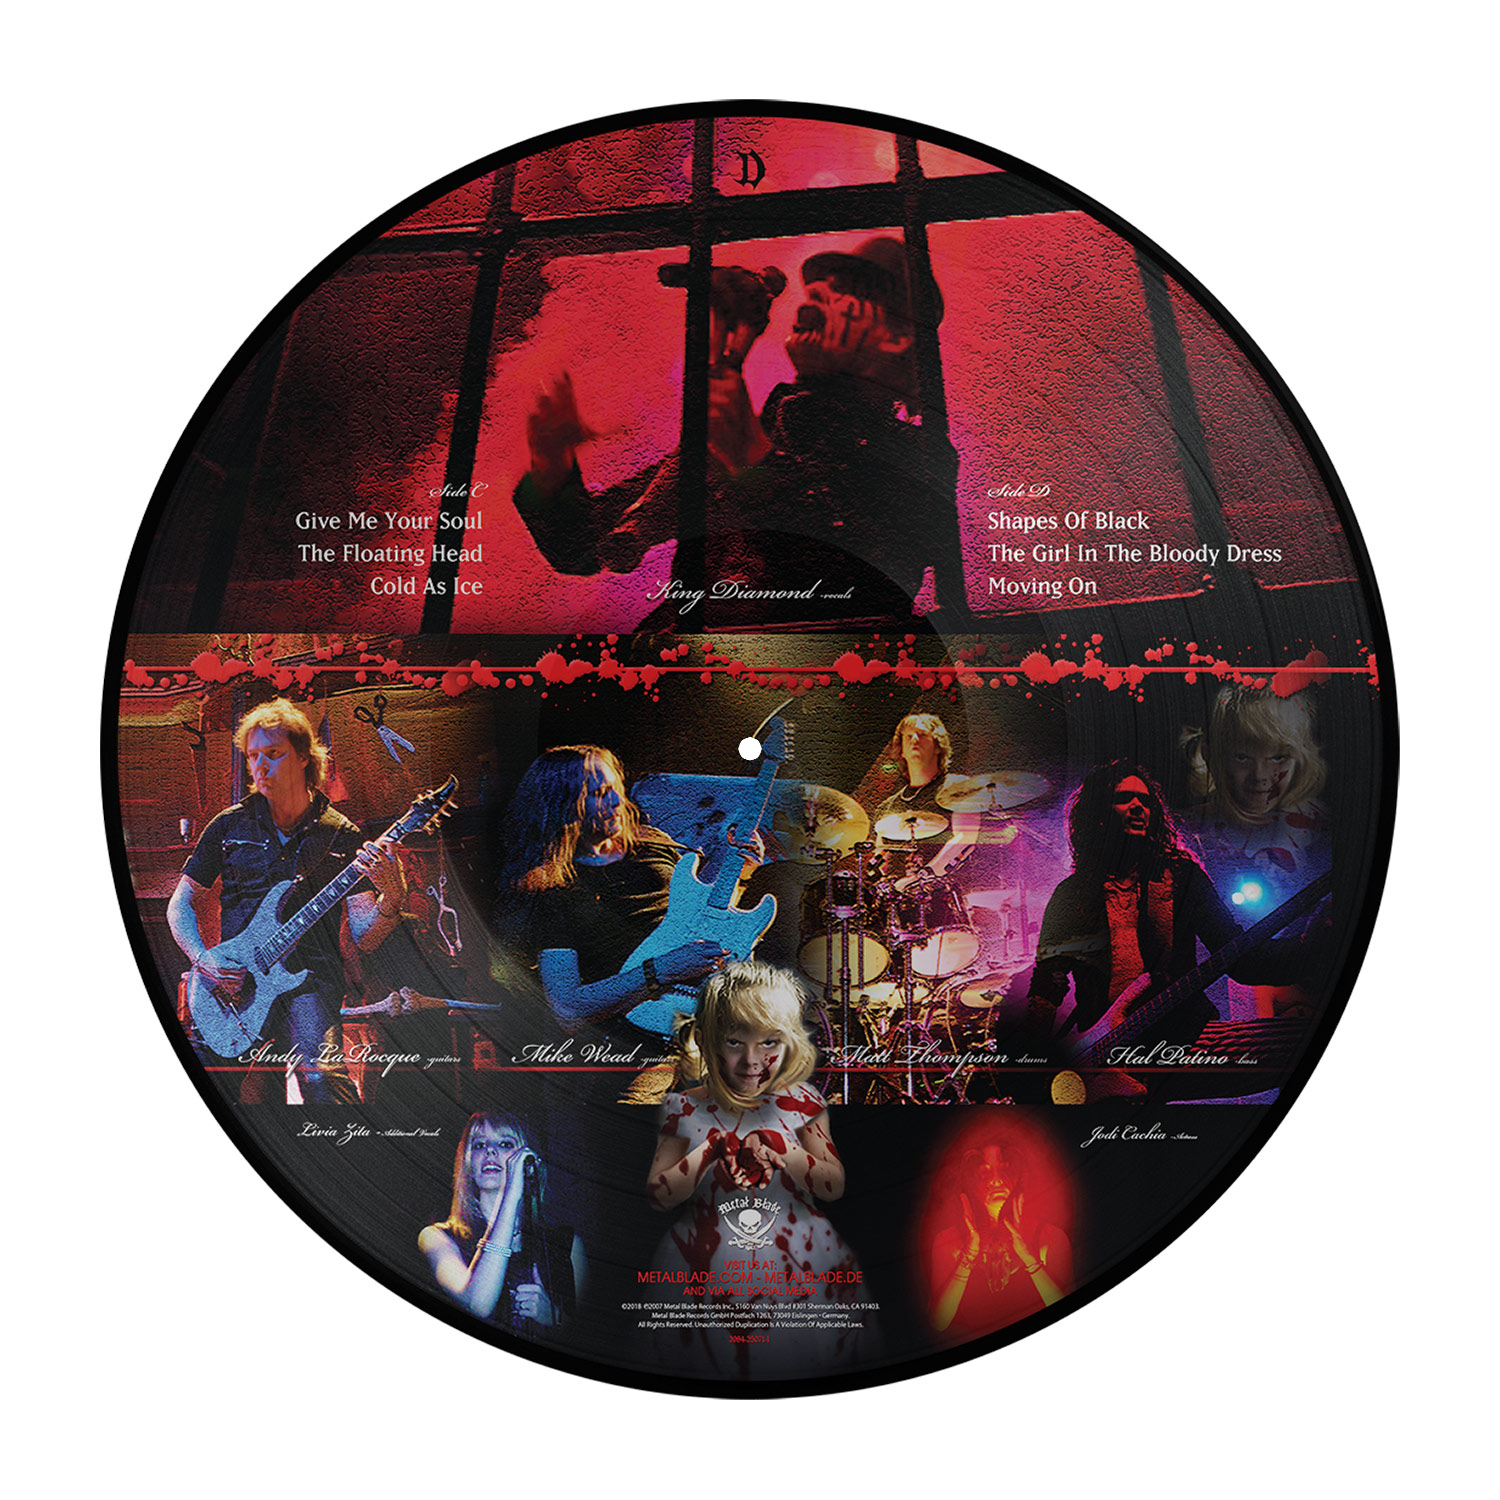 Give Me Your Soul...Please (Picture Disc)